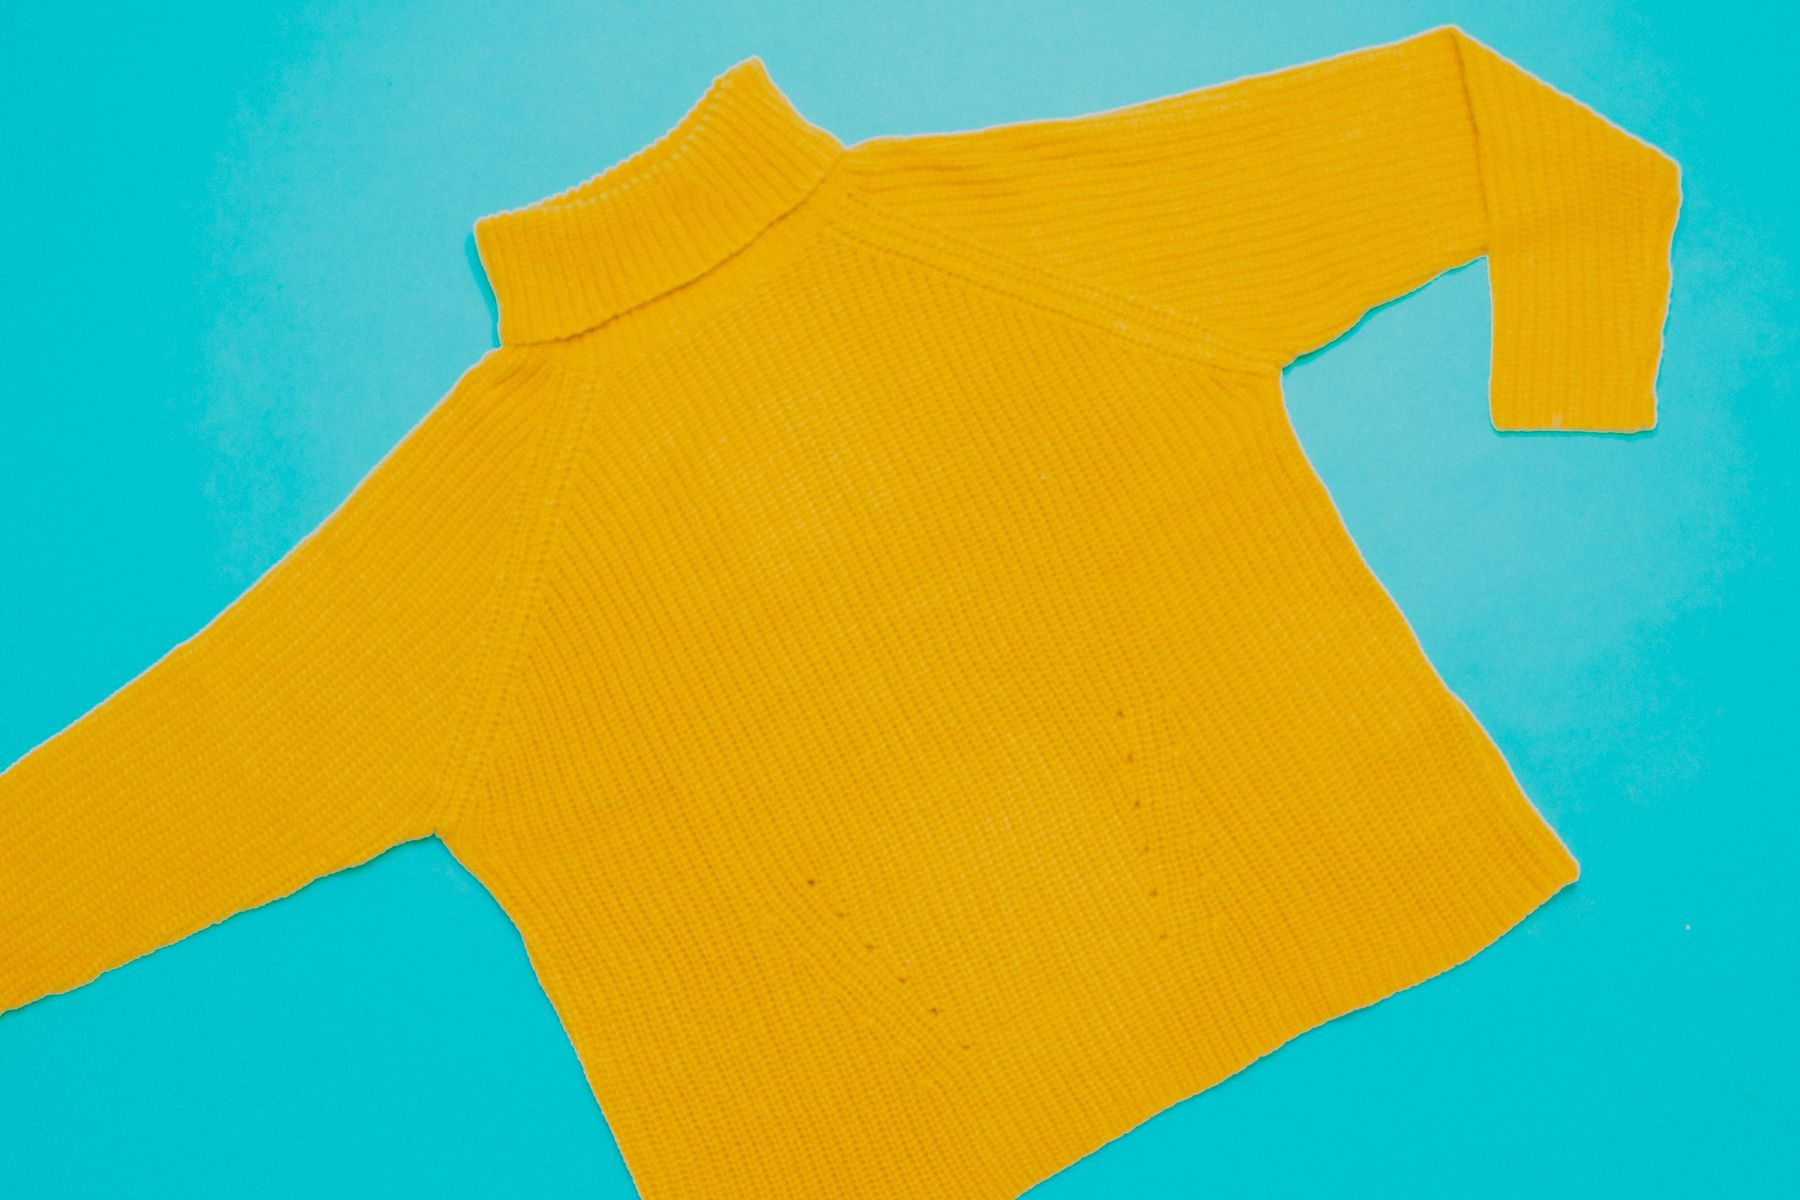 Yellow jumper made of wool, which is on the list of what causes eczema flare-ups